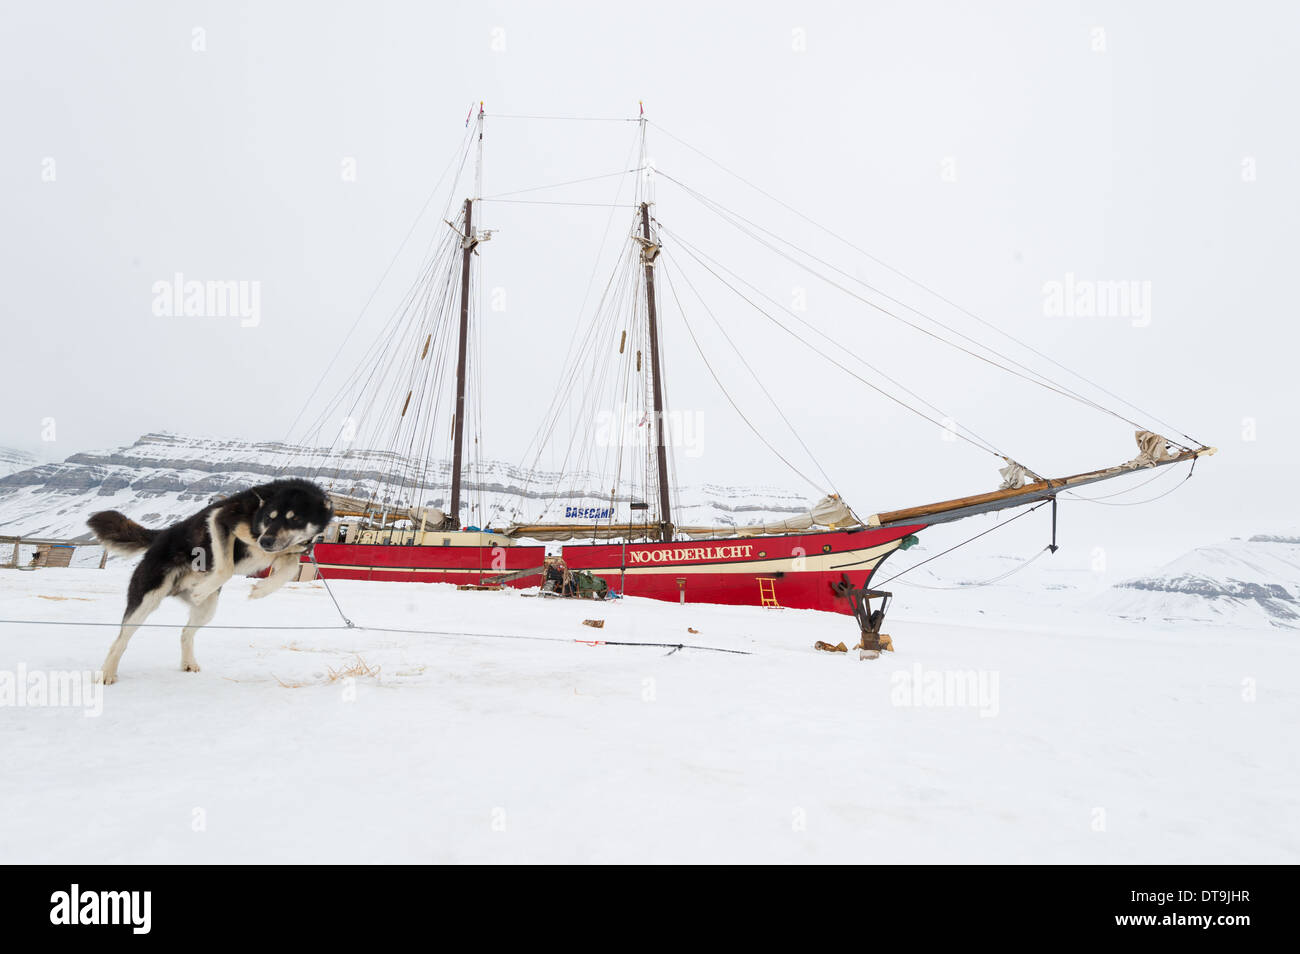 Leaping sled dog in the snow in front of the Noorderlicht 'Ship in the Ice', Temple Fjord (Tempelfjorden), Spitsbergen, Svalbard Archipelago, Norway - Stock Image